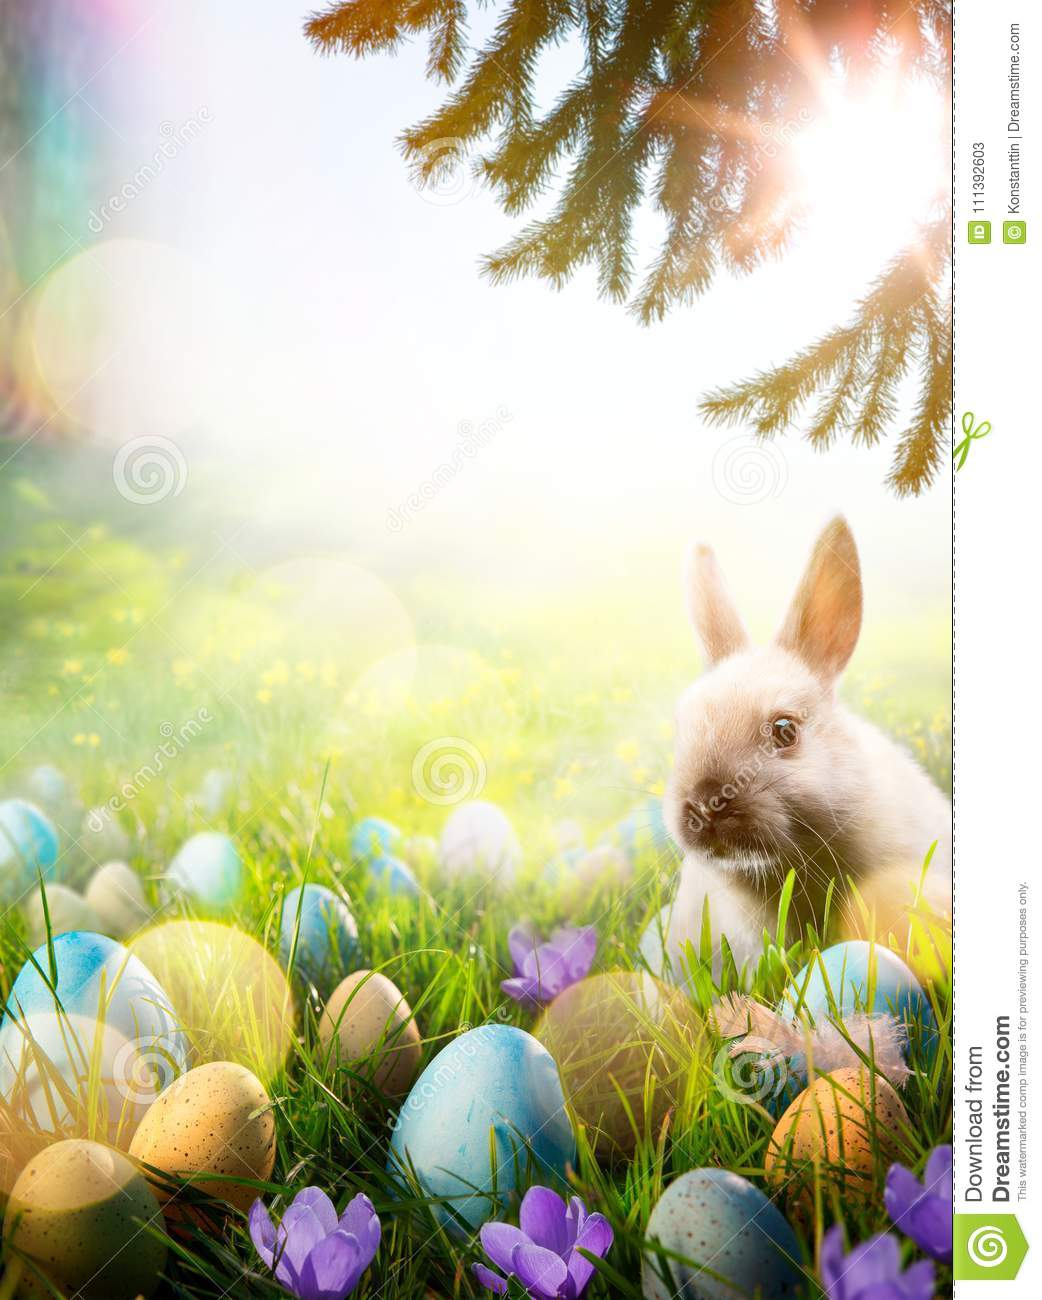 Art Easter Background  Spring Flowers Easter Bunny And Easter E     Download Art Easter Background  Spring Flowers Easter Bunny And Easter E  Stock Image   Image